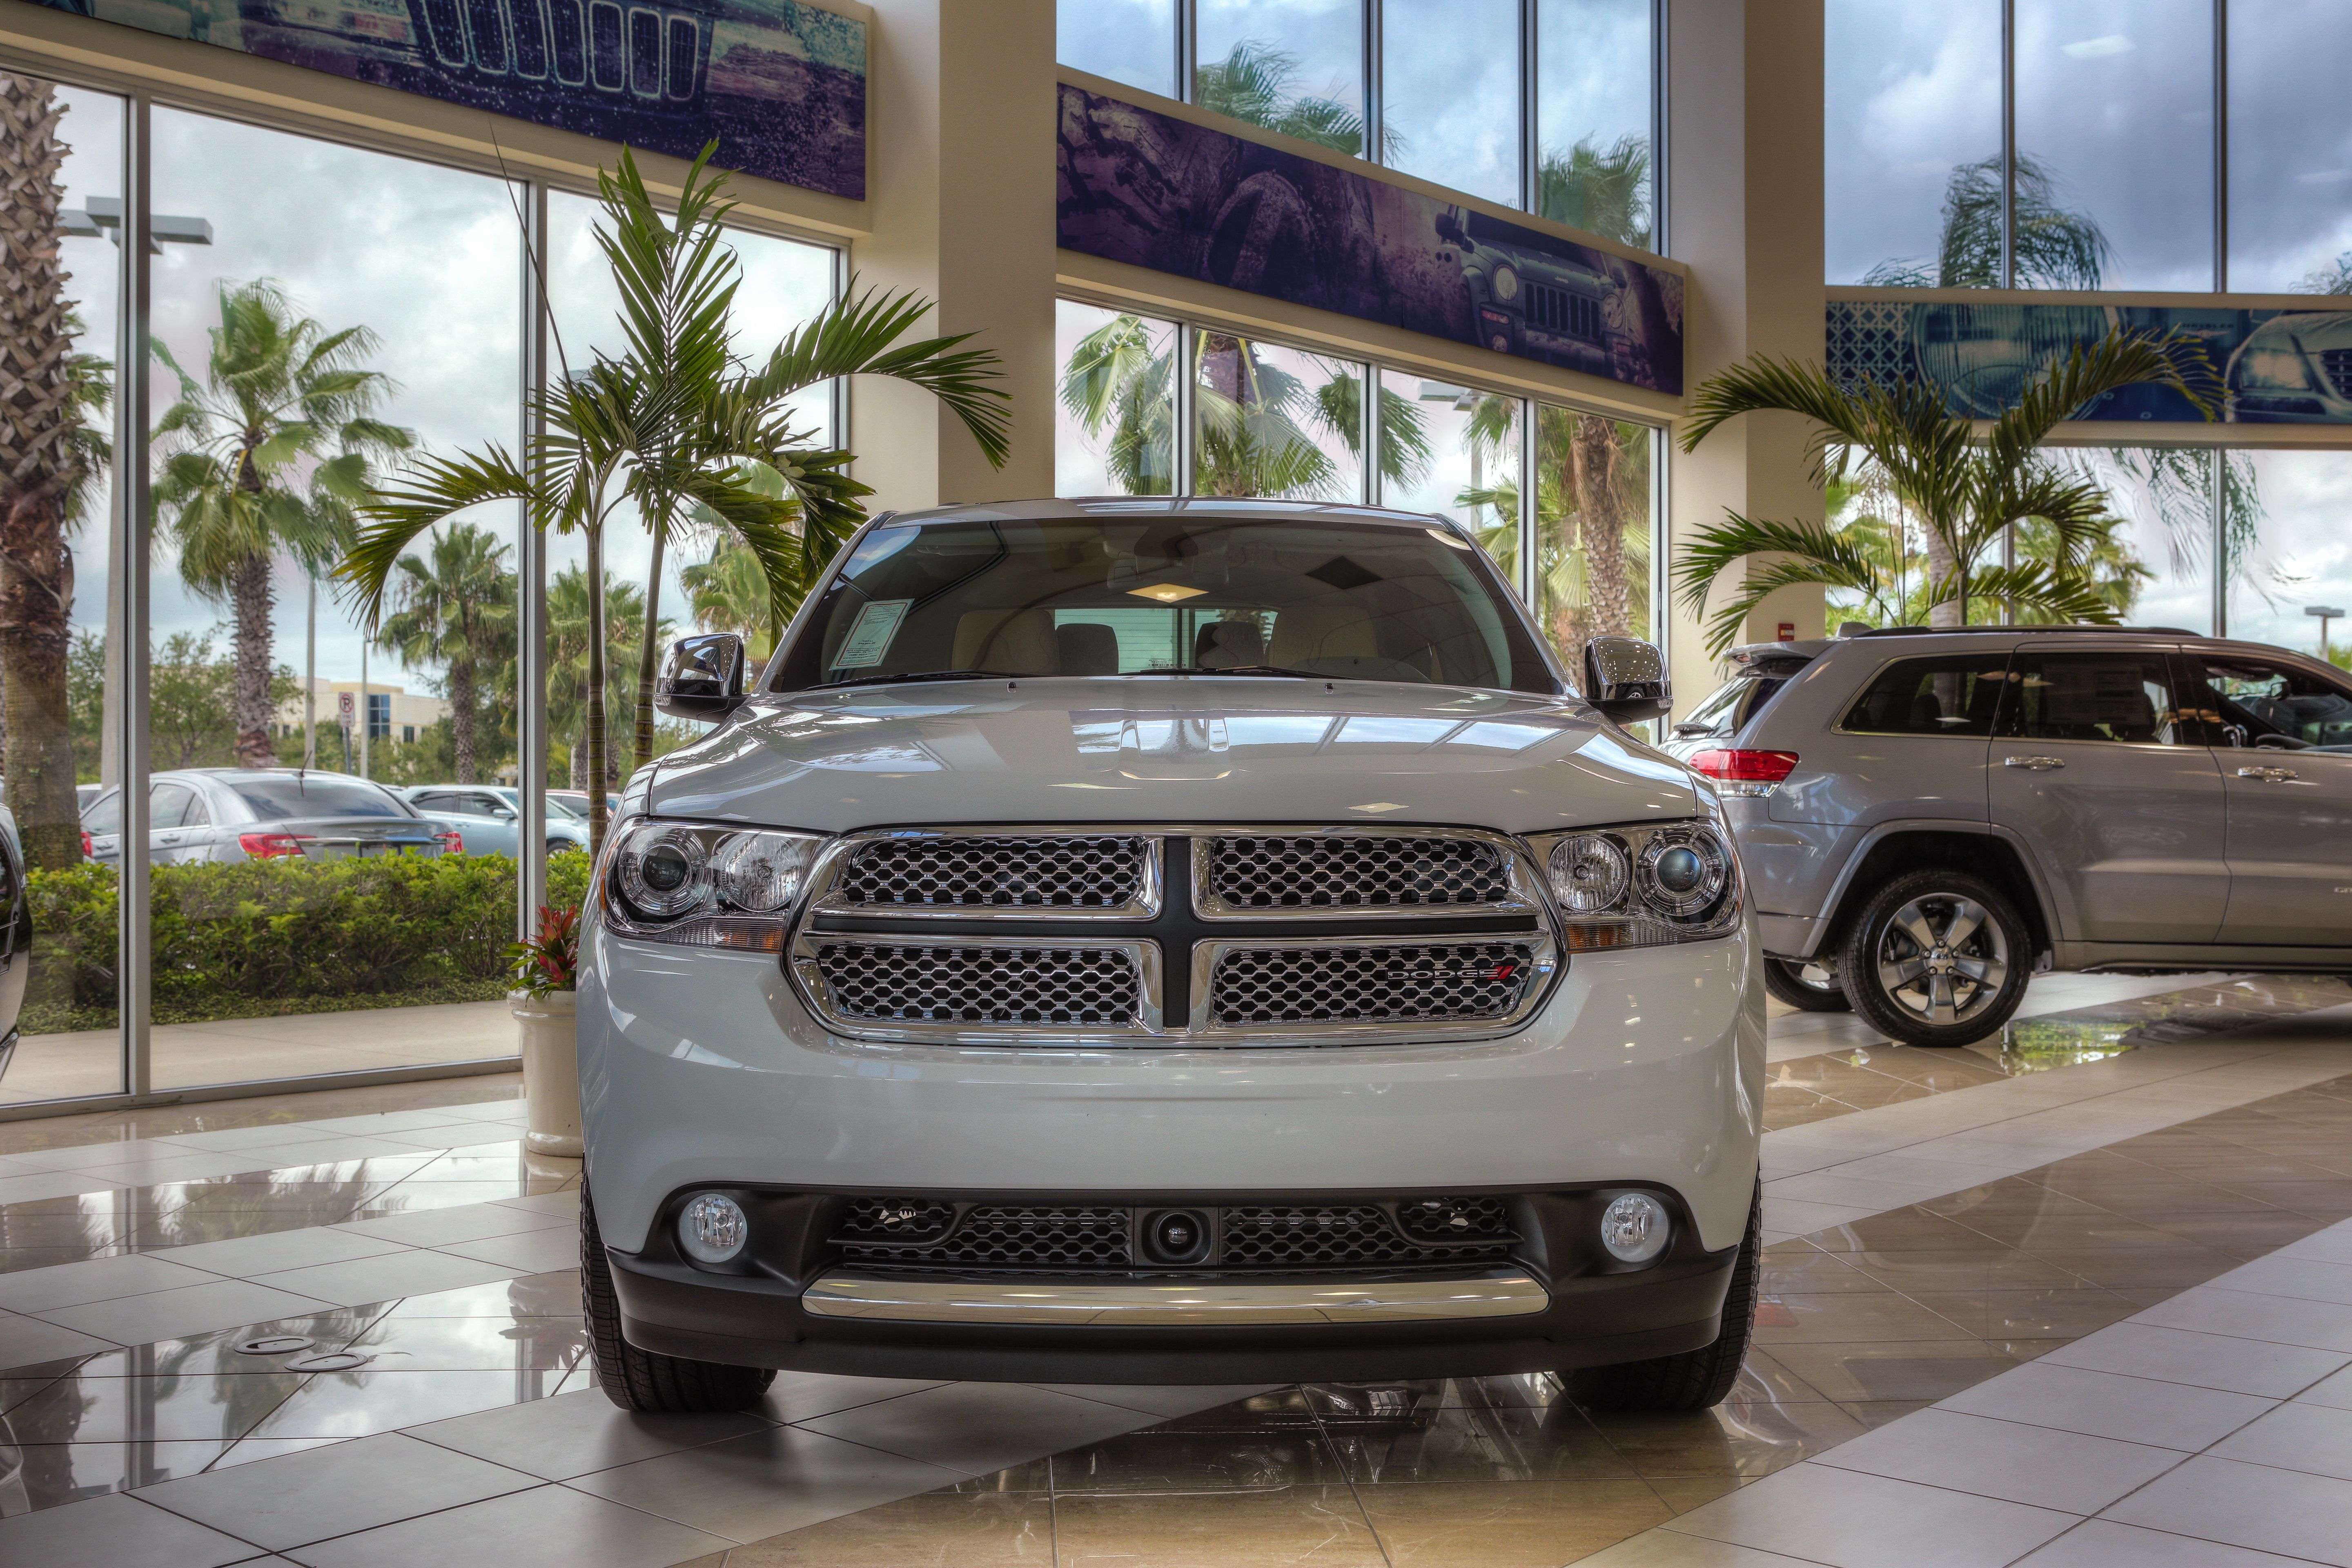 New Chrysler Dodge Jeep Ram Inventory Jeep Dodge Dodge Jeep